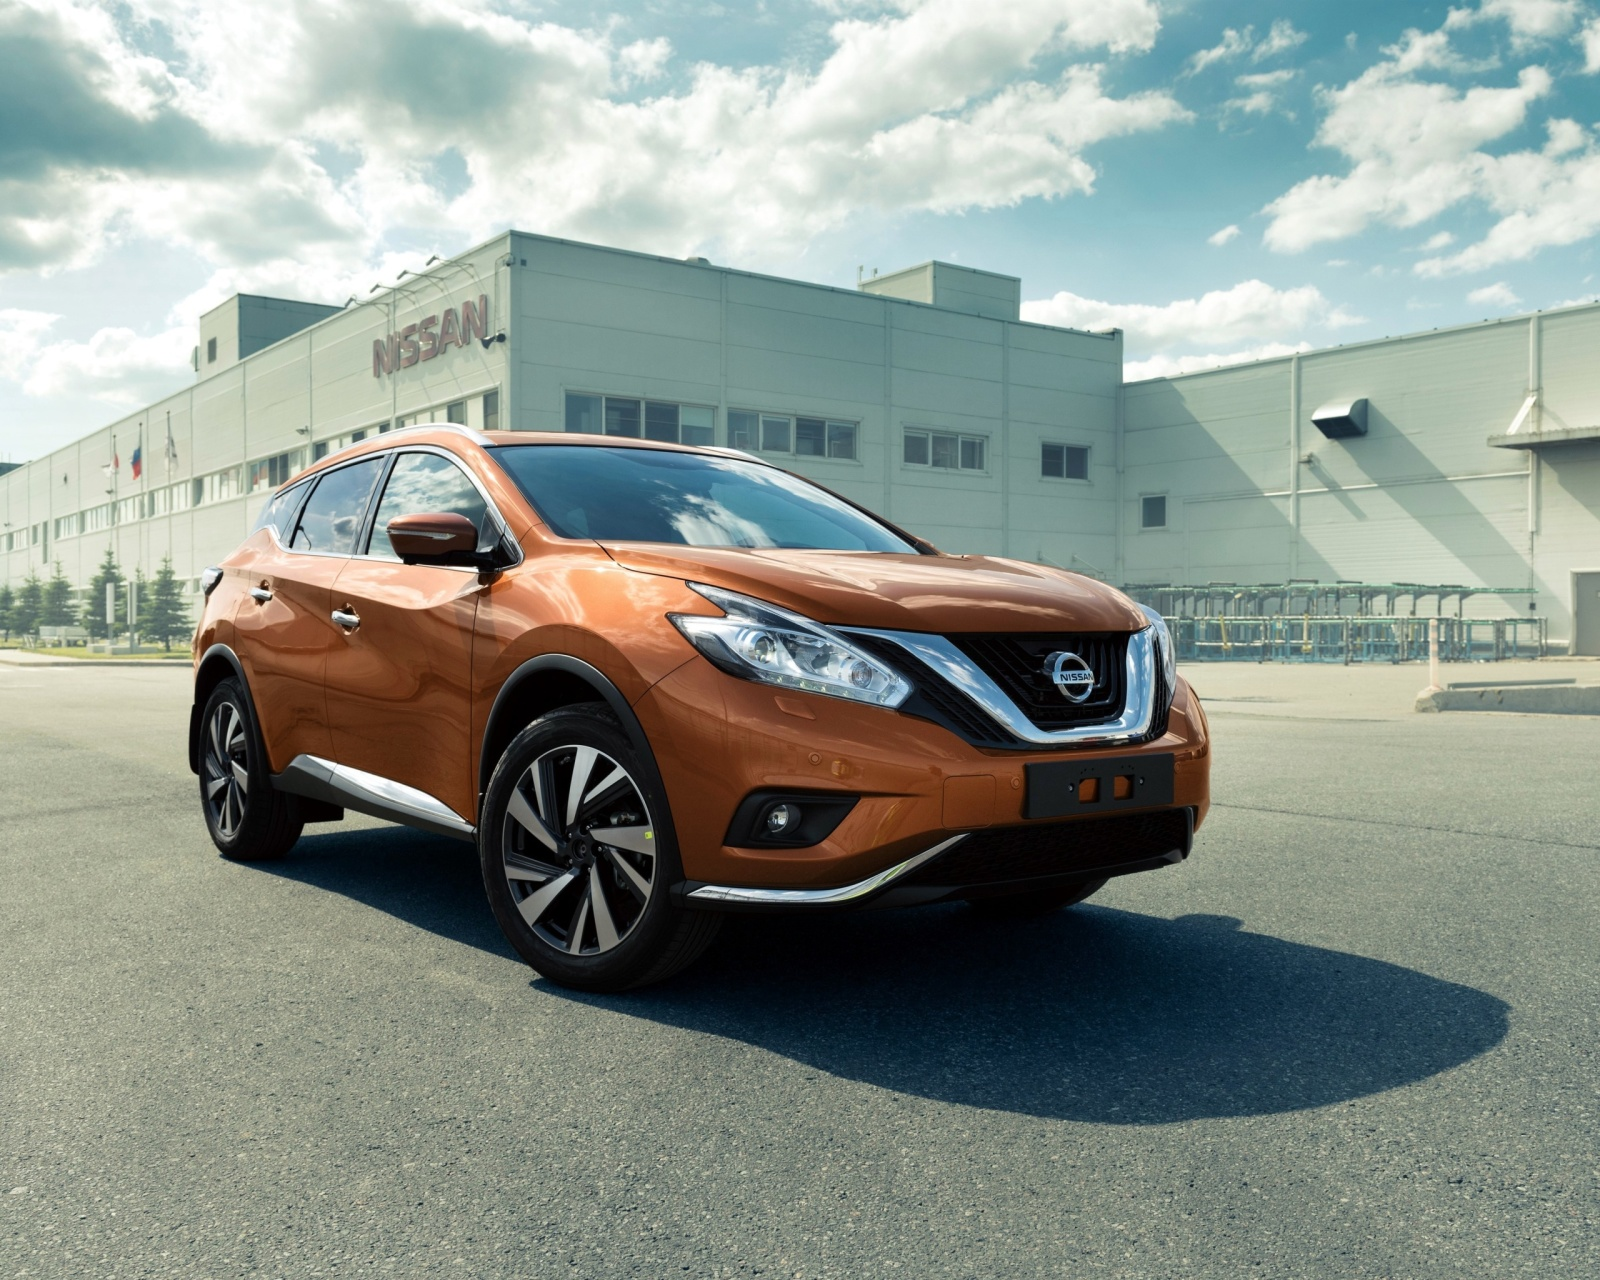 Nissan Murano 2017 screenshot #1 1600x1280